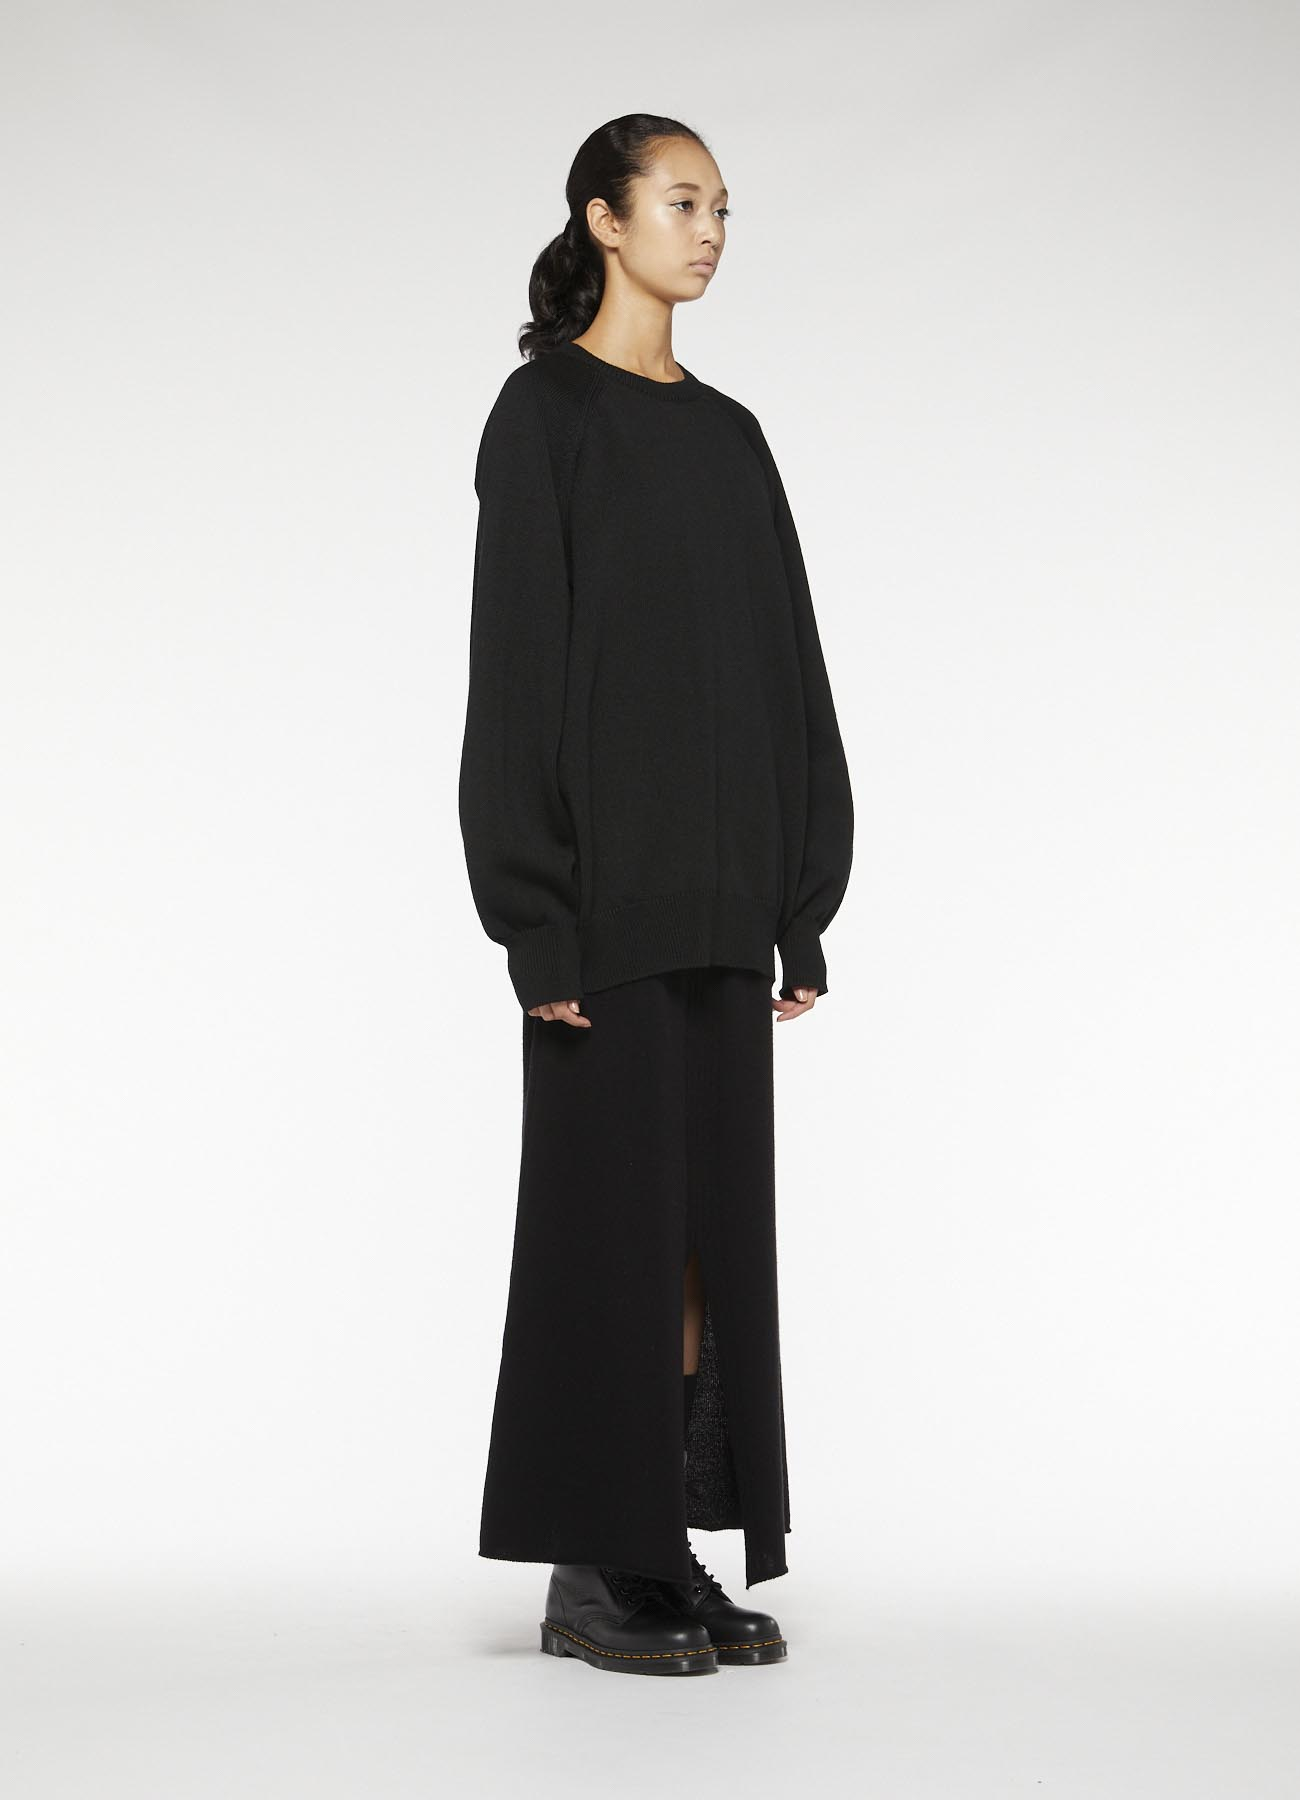 RISMATbyY's POLYESTER WOOL ZIP PULL OVER